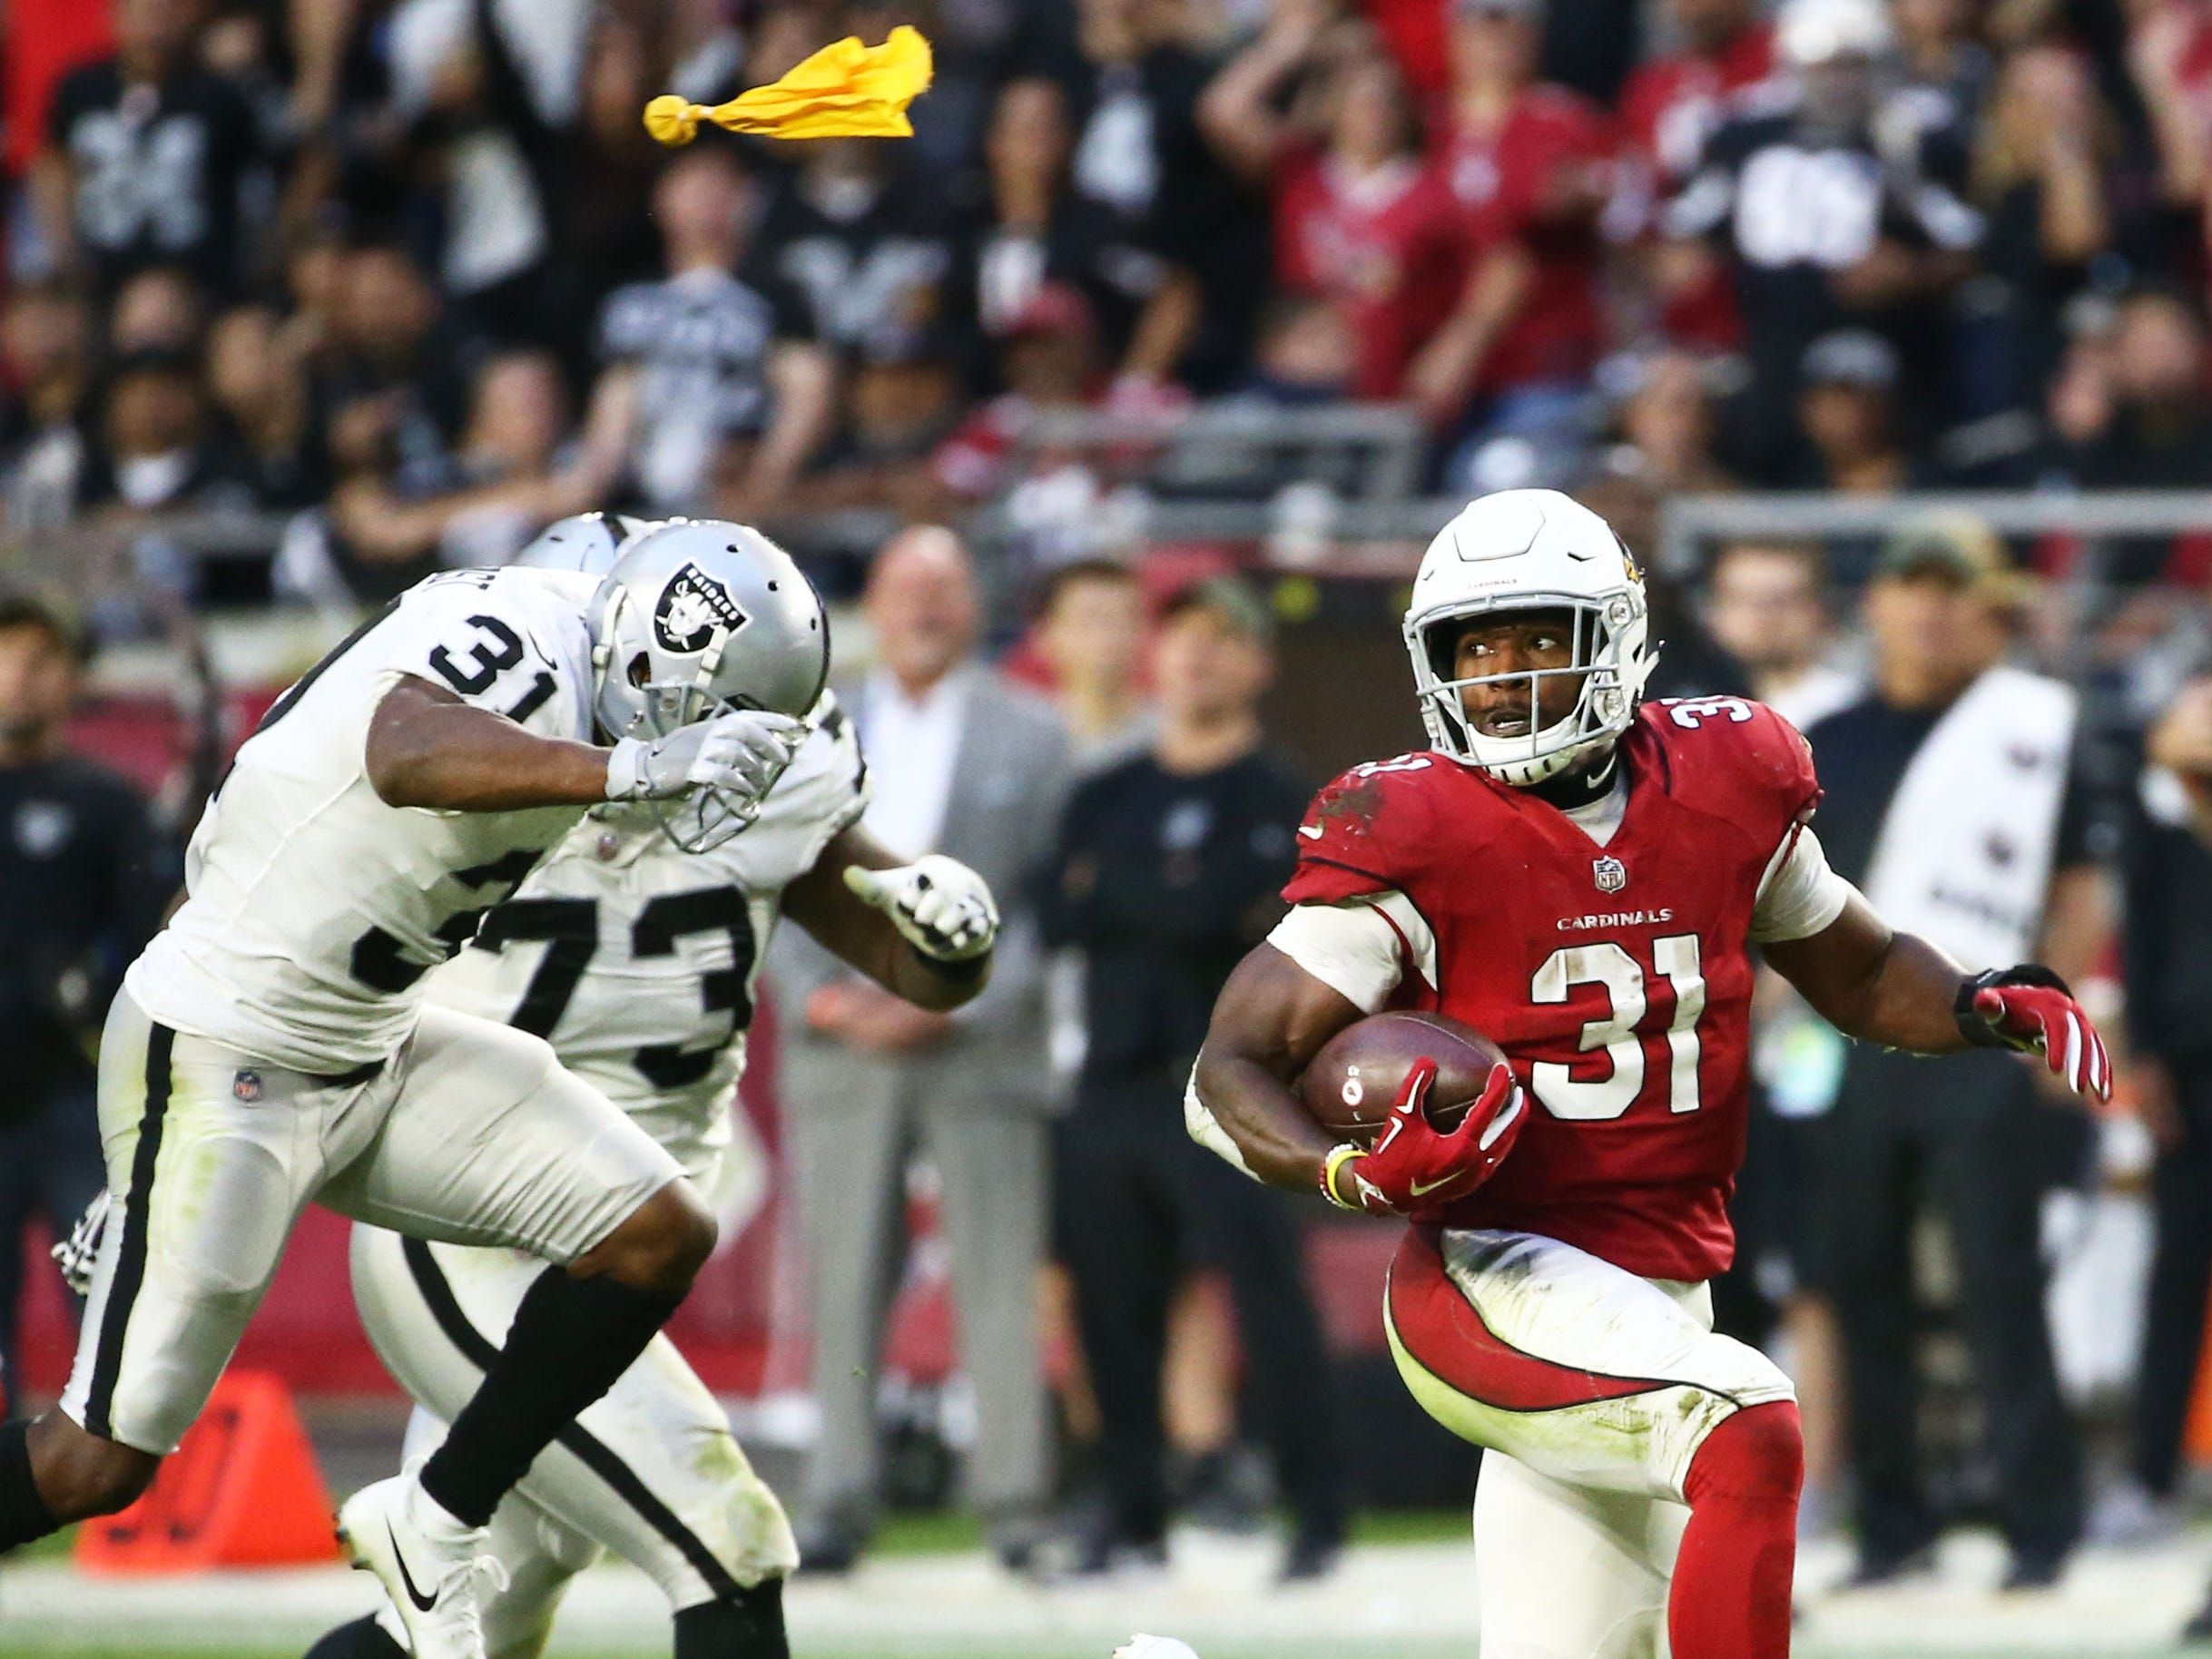 A flag (top) flies over Arizona Cardinals running back David Johnson as he runs for a touchdown against the Oakland Raiders in the second half during a game on Nov. 18 at State Farm Stadium. The touchdown has called back due to offensive holding against the Cardinals.